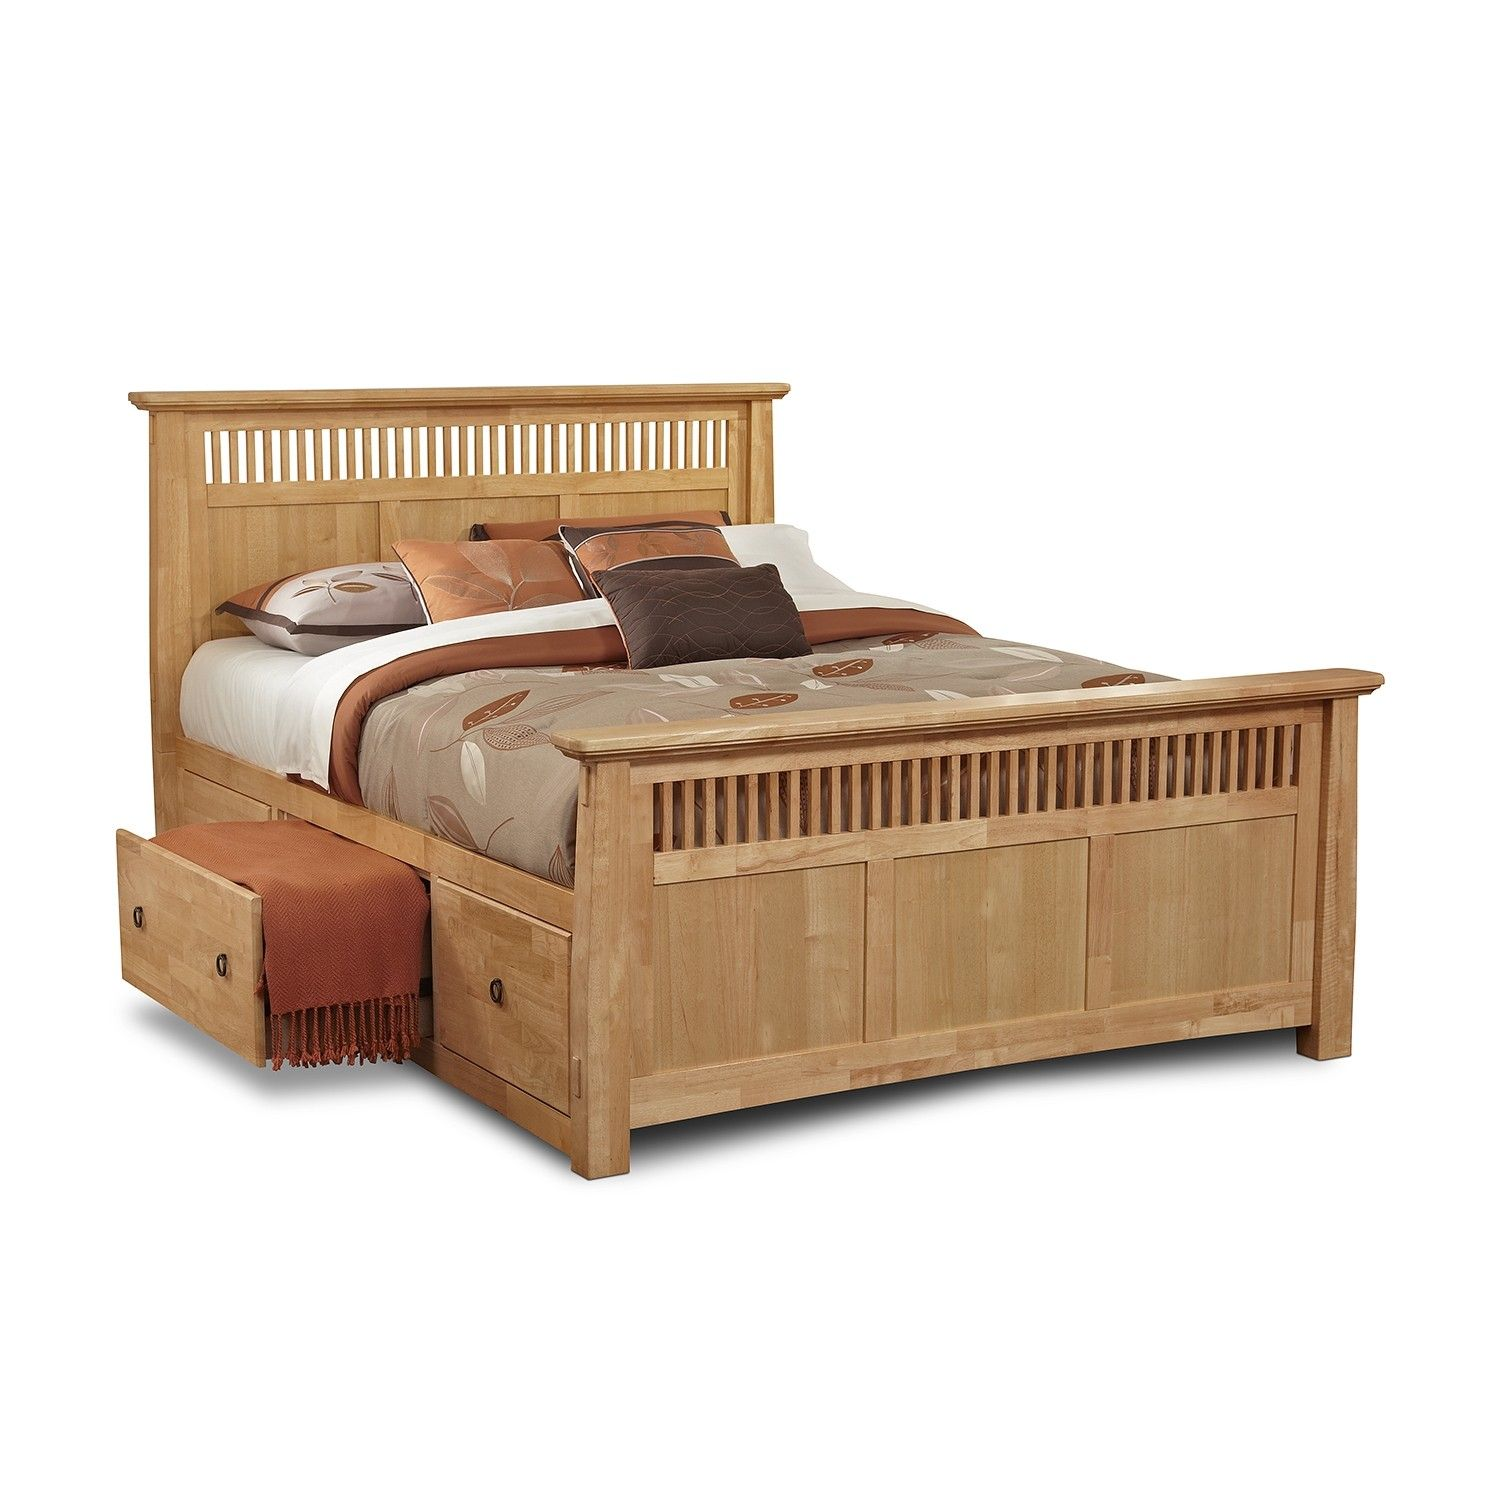 queen size bed frame with drawers underneath not a buying site queen size bed frame with storage SGHSDGJ